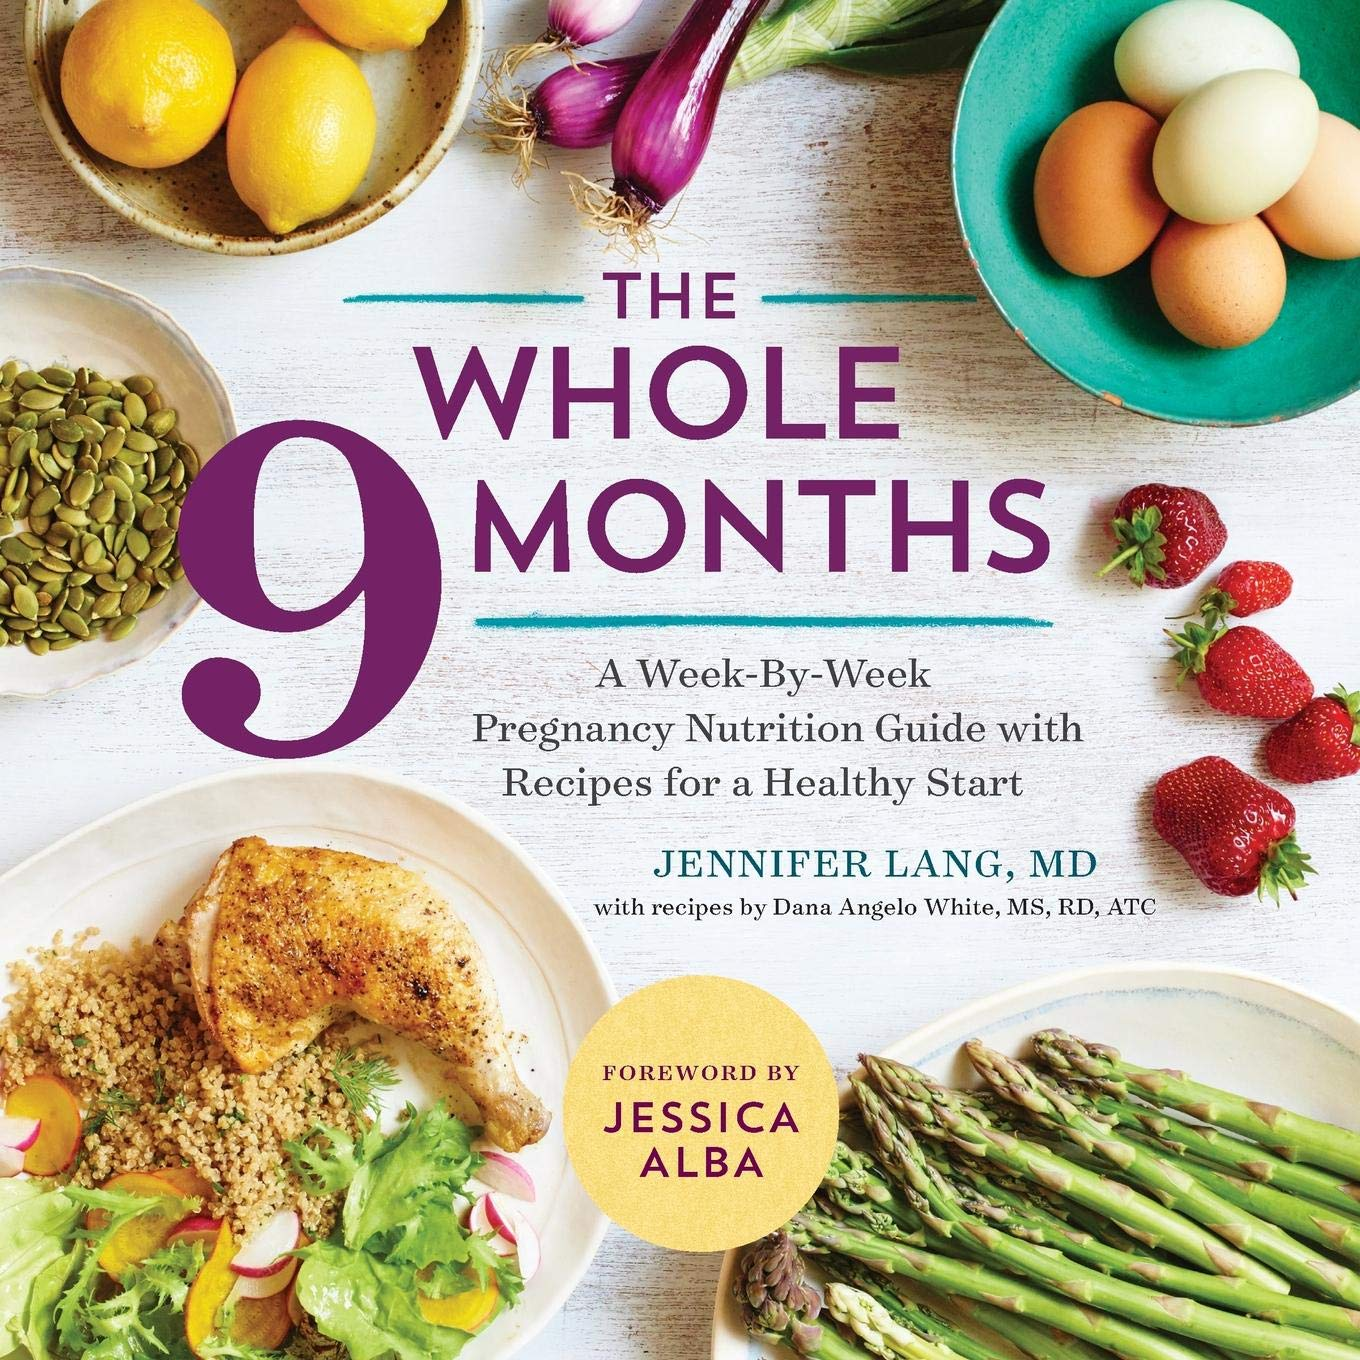 The Whole 9 Months: A Week-By-Week Pregnancy Nutrition Guide with Recipes for a Healthy Start by Sonoma Press